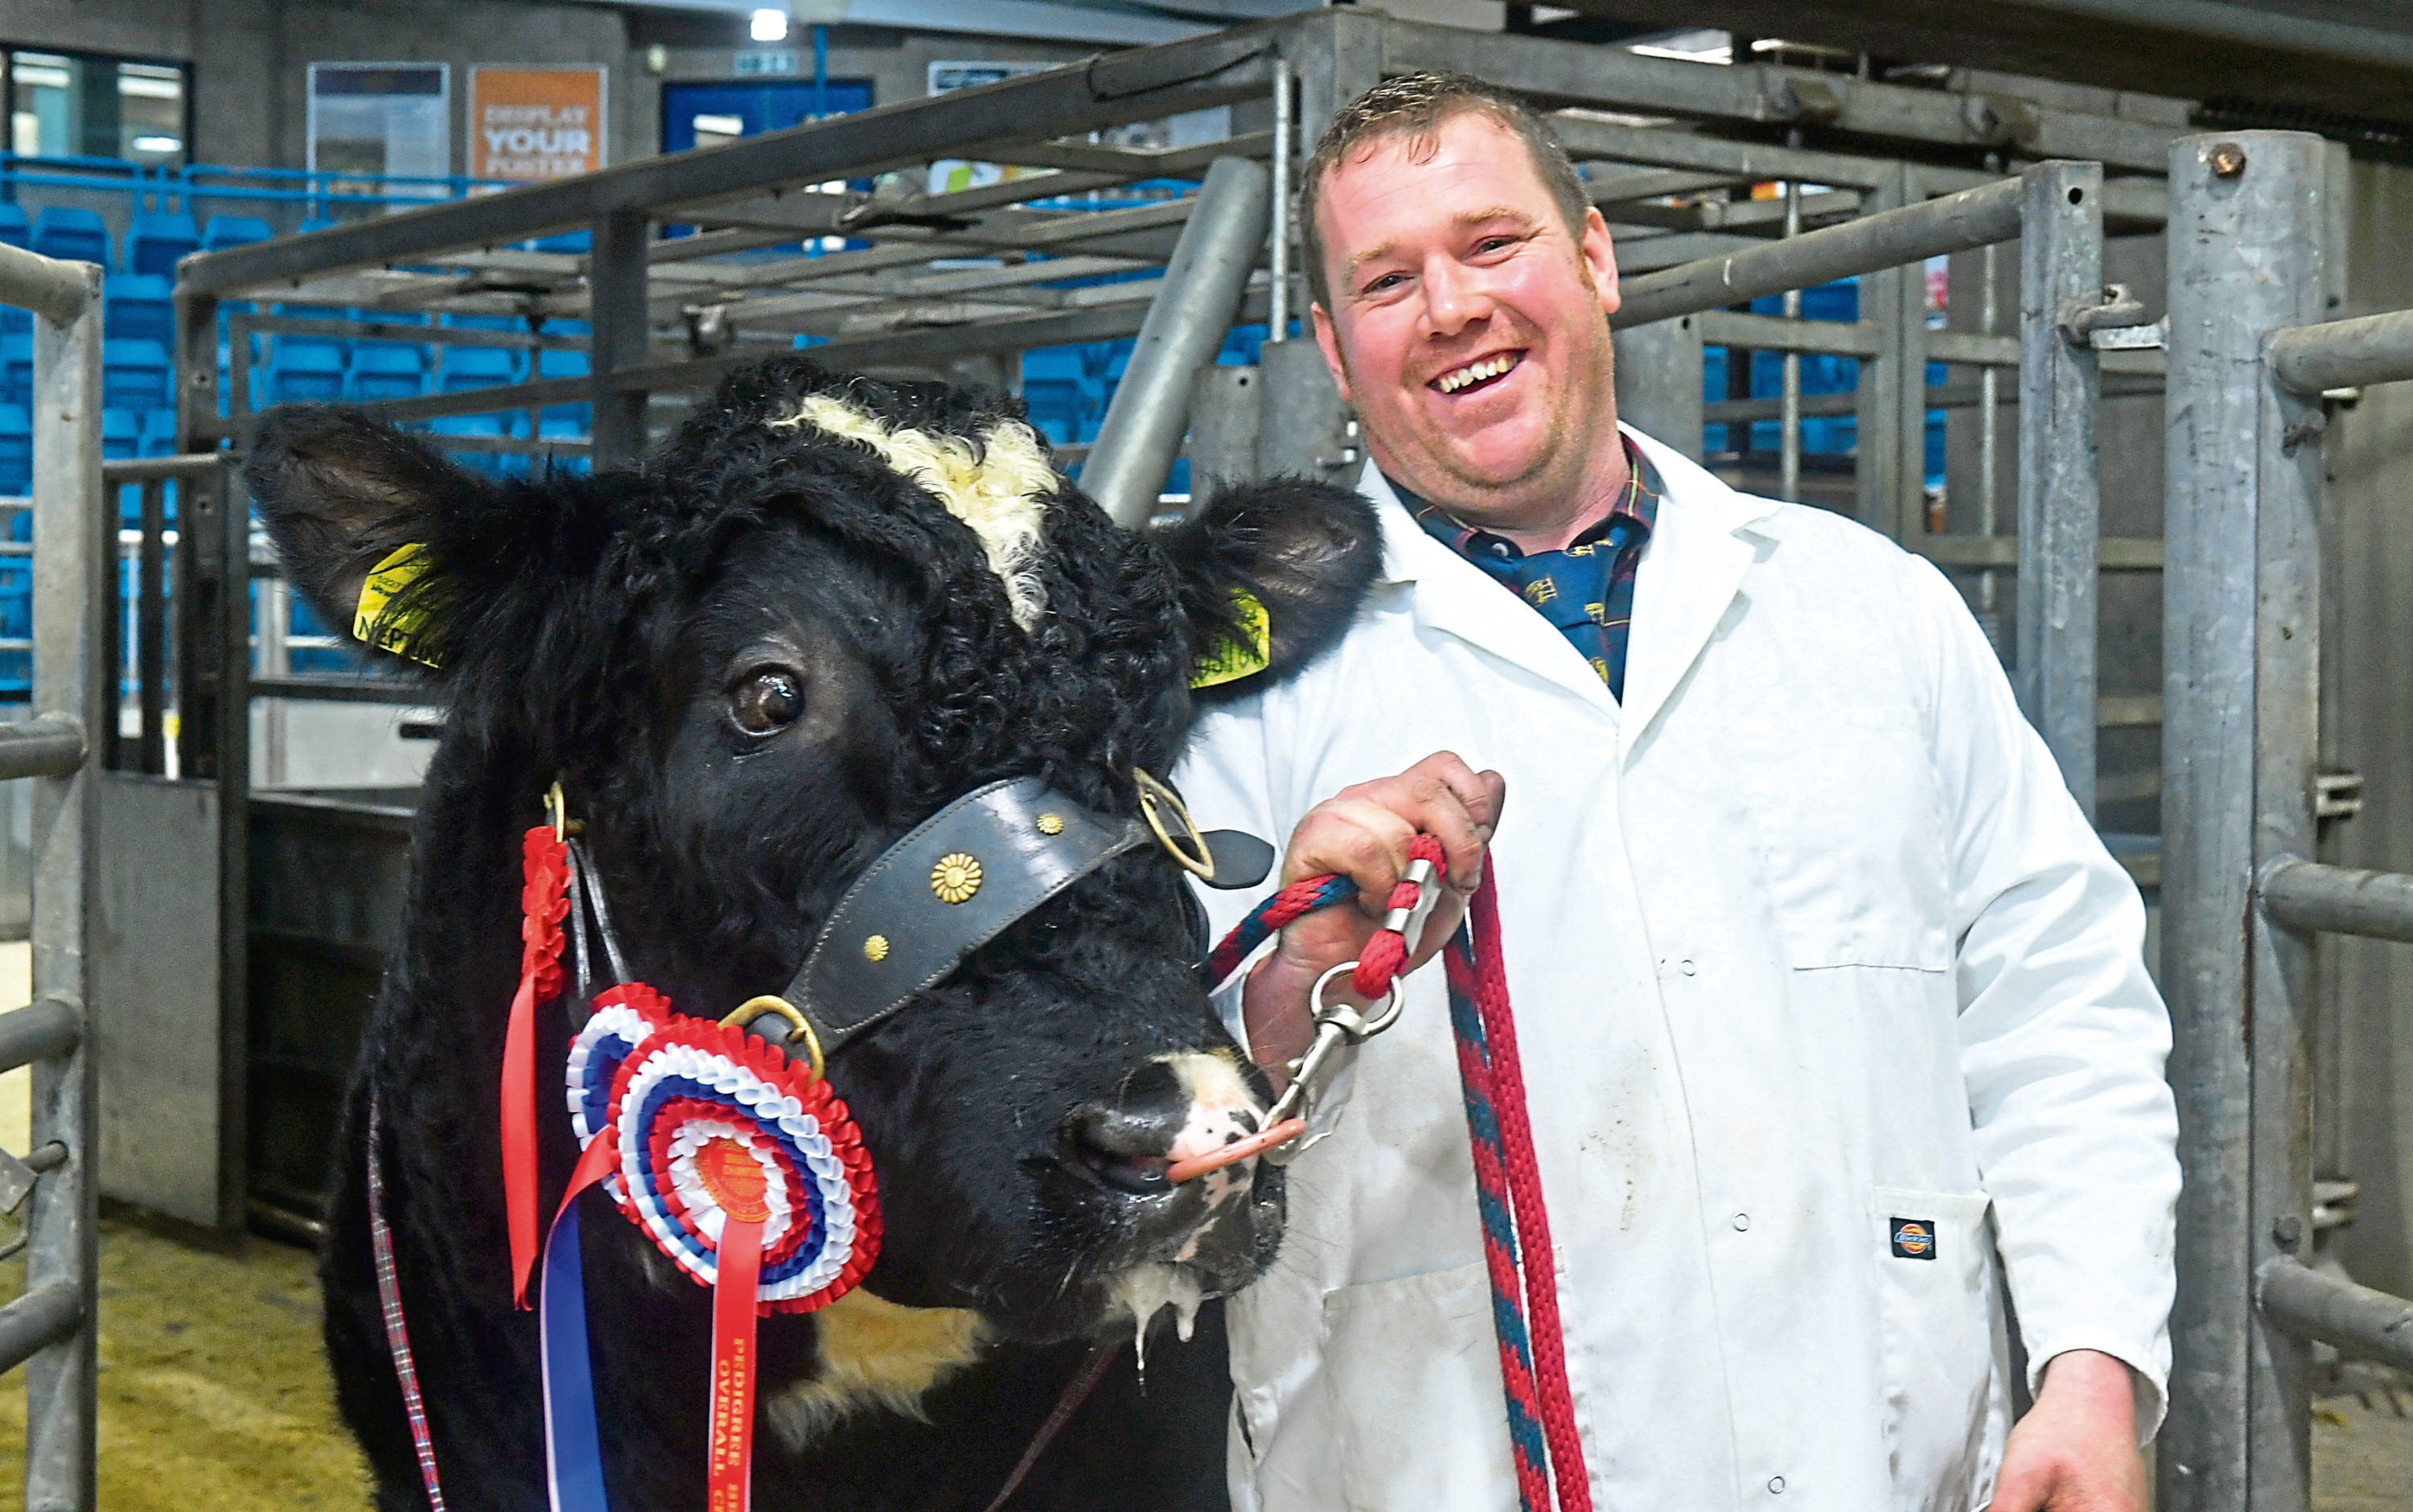 Garry Patterson with the overall bull champion.